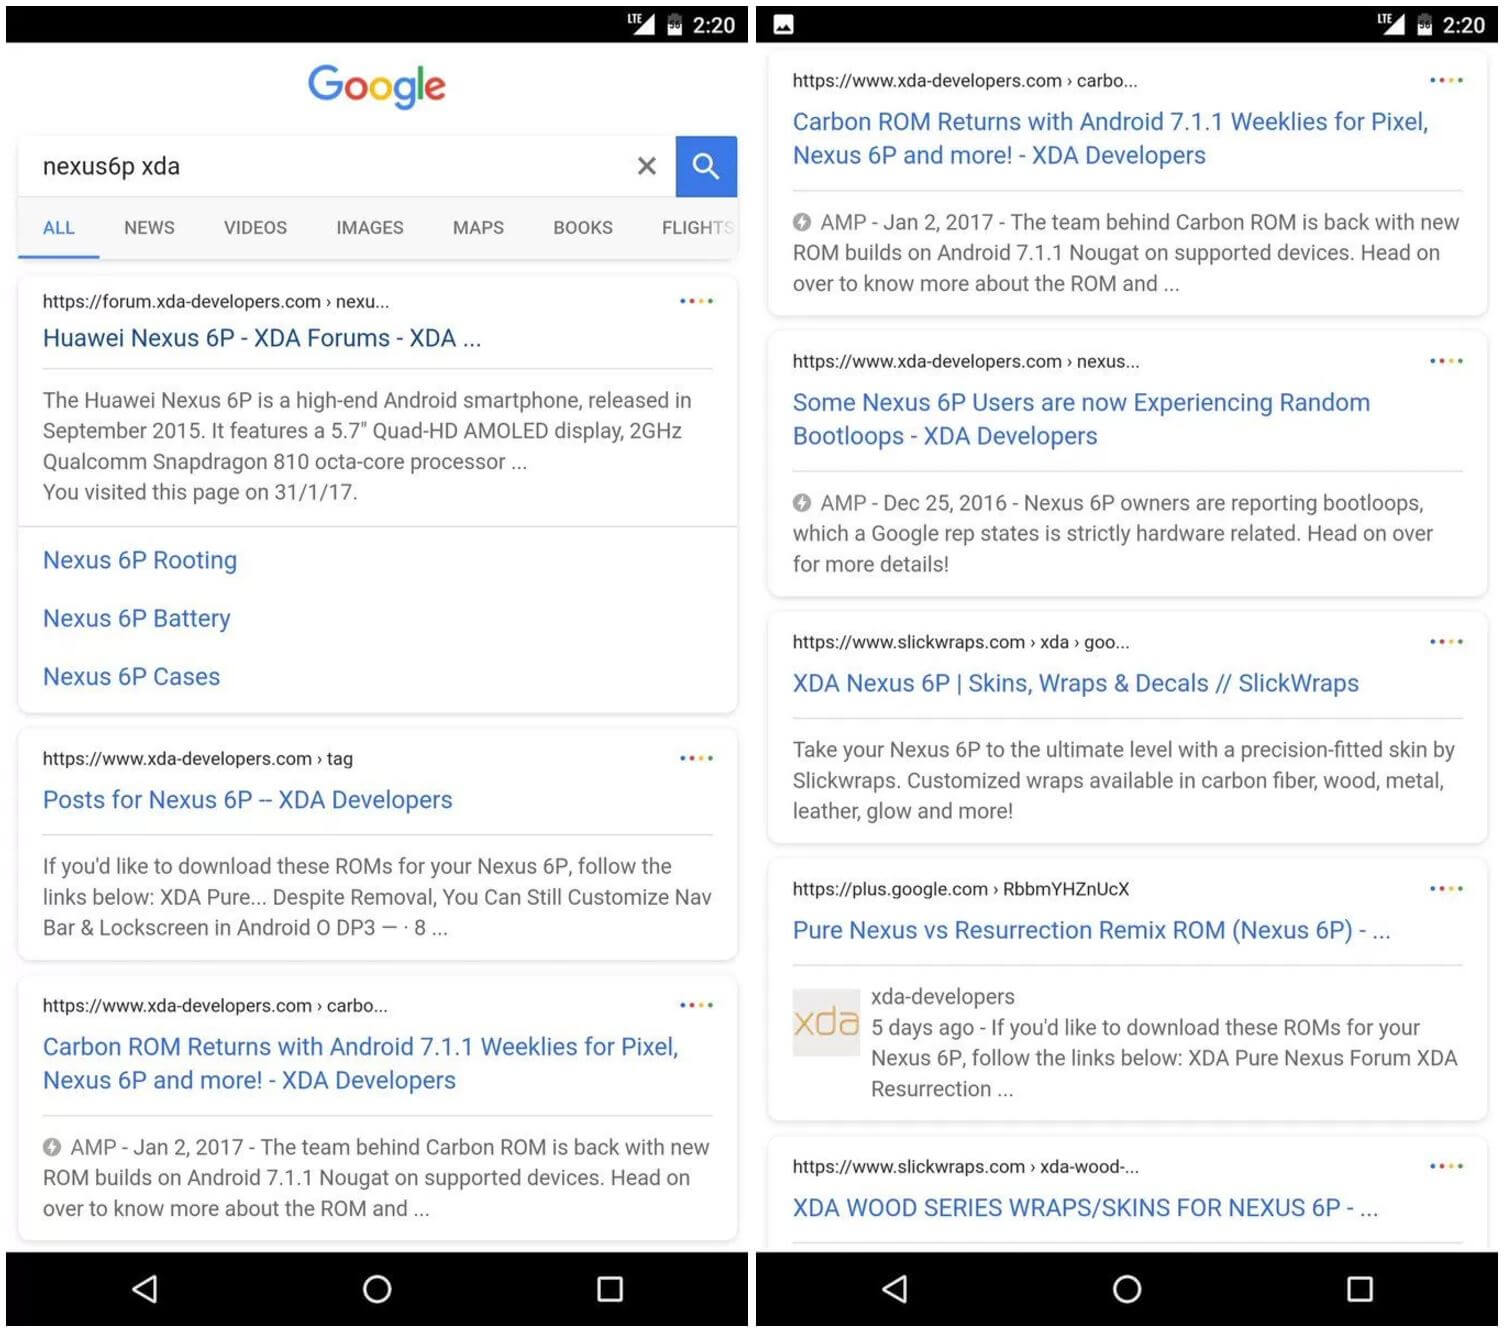 google search new design mobile